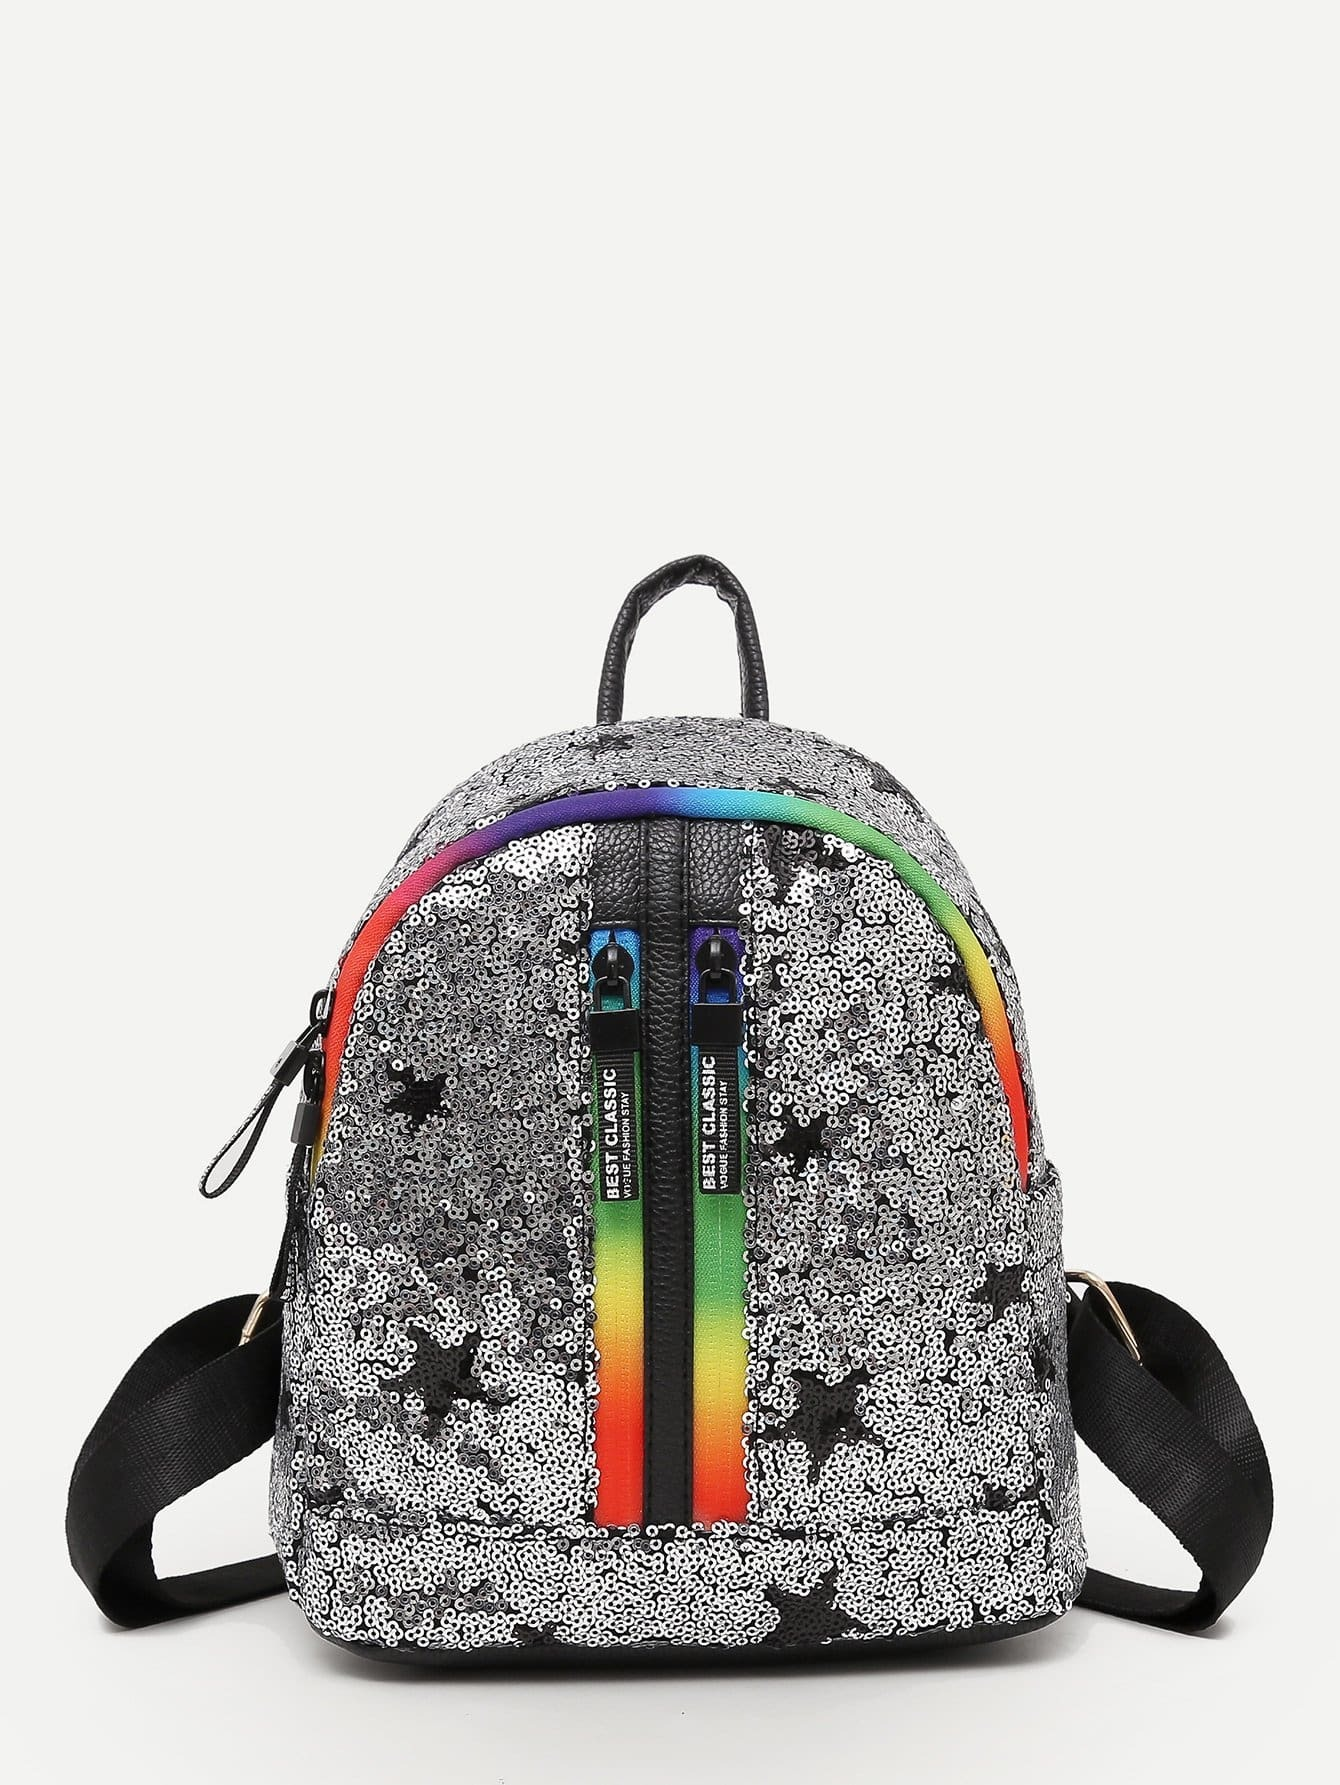 Фото Sequins Decor Zip Backpack sequins